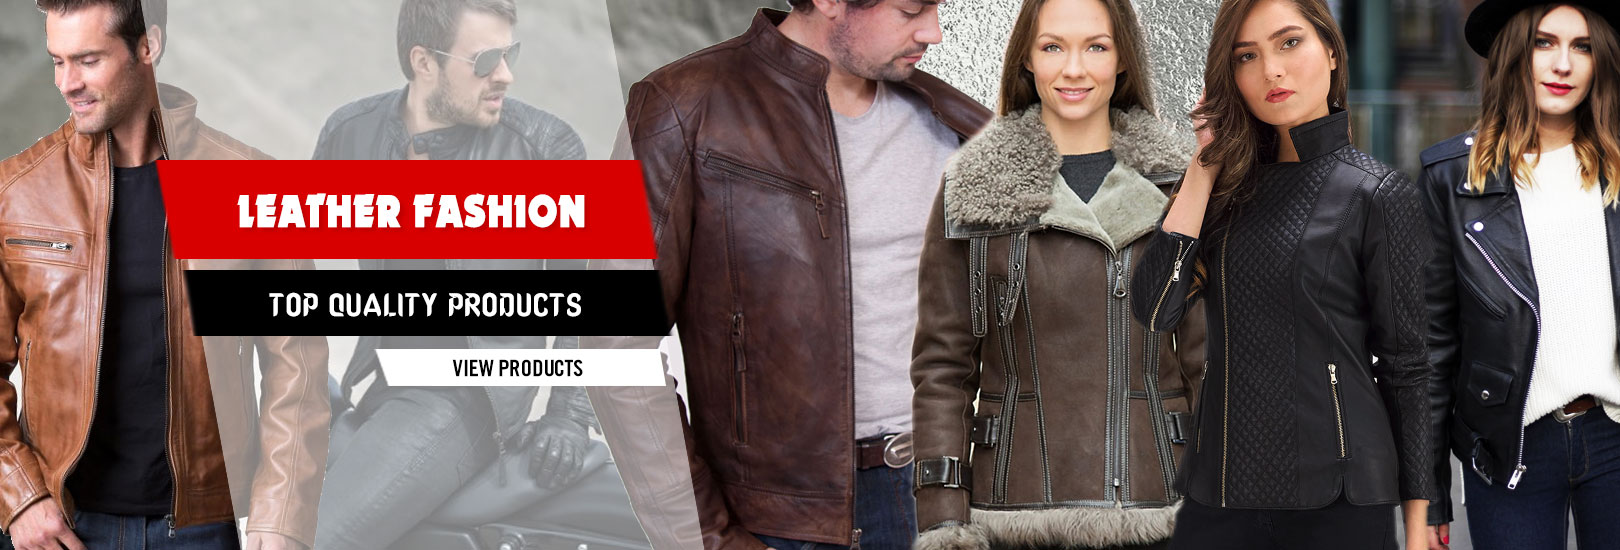 leather-fashion-jackets